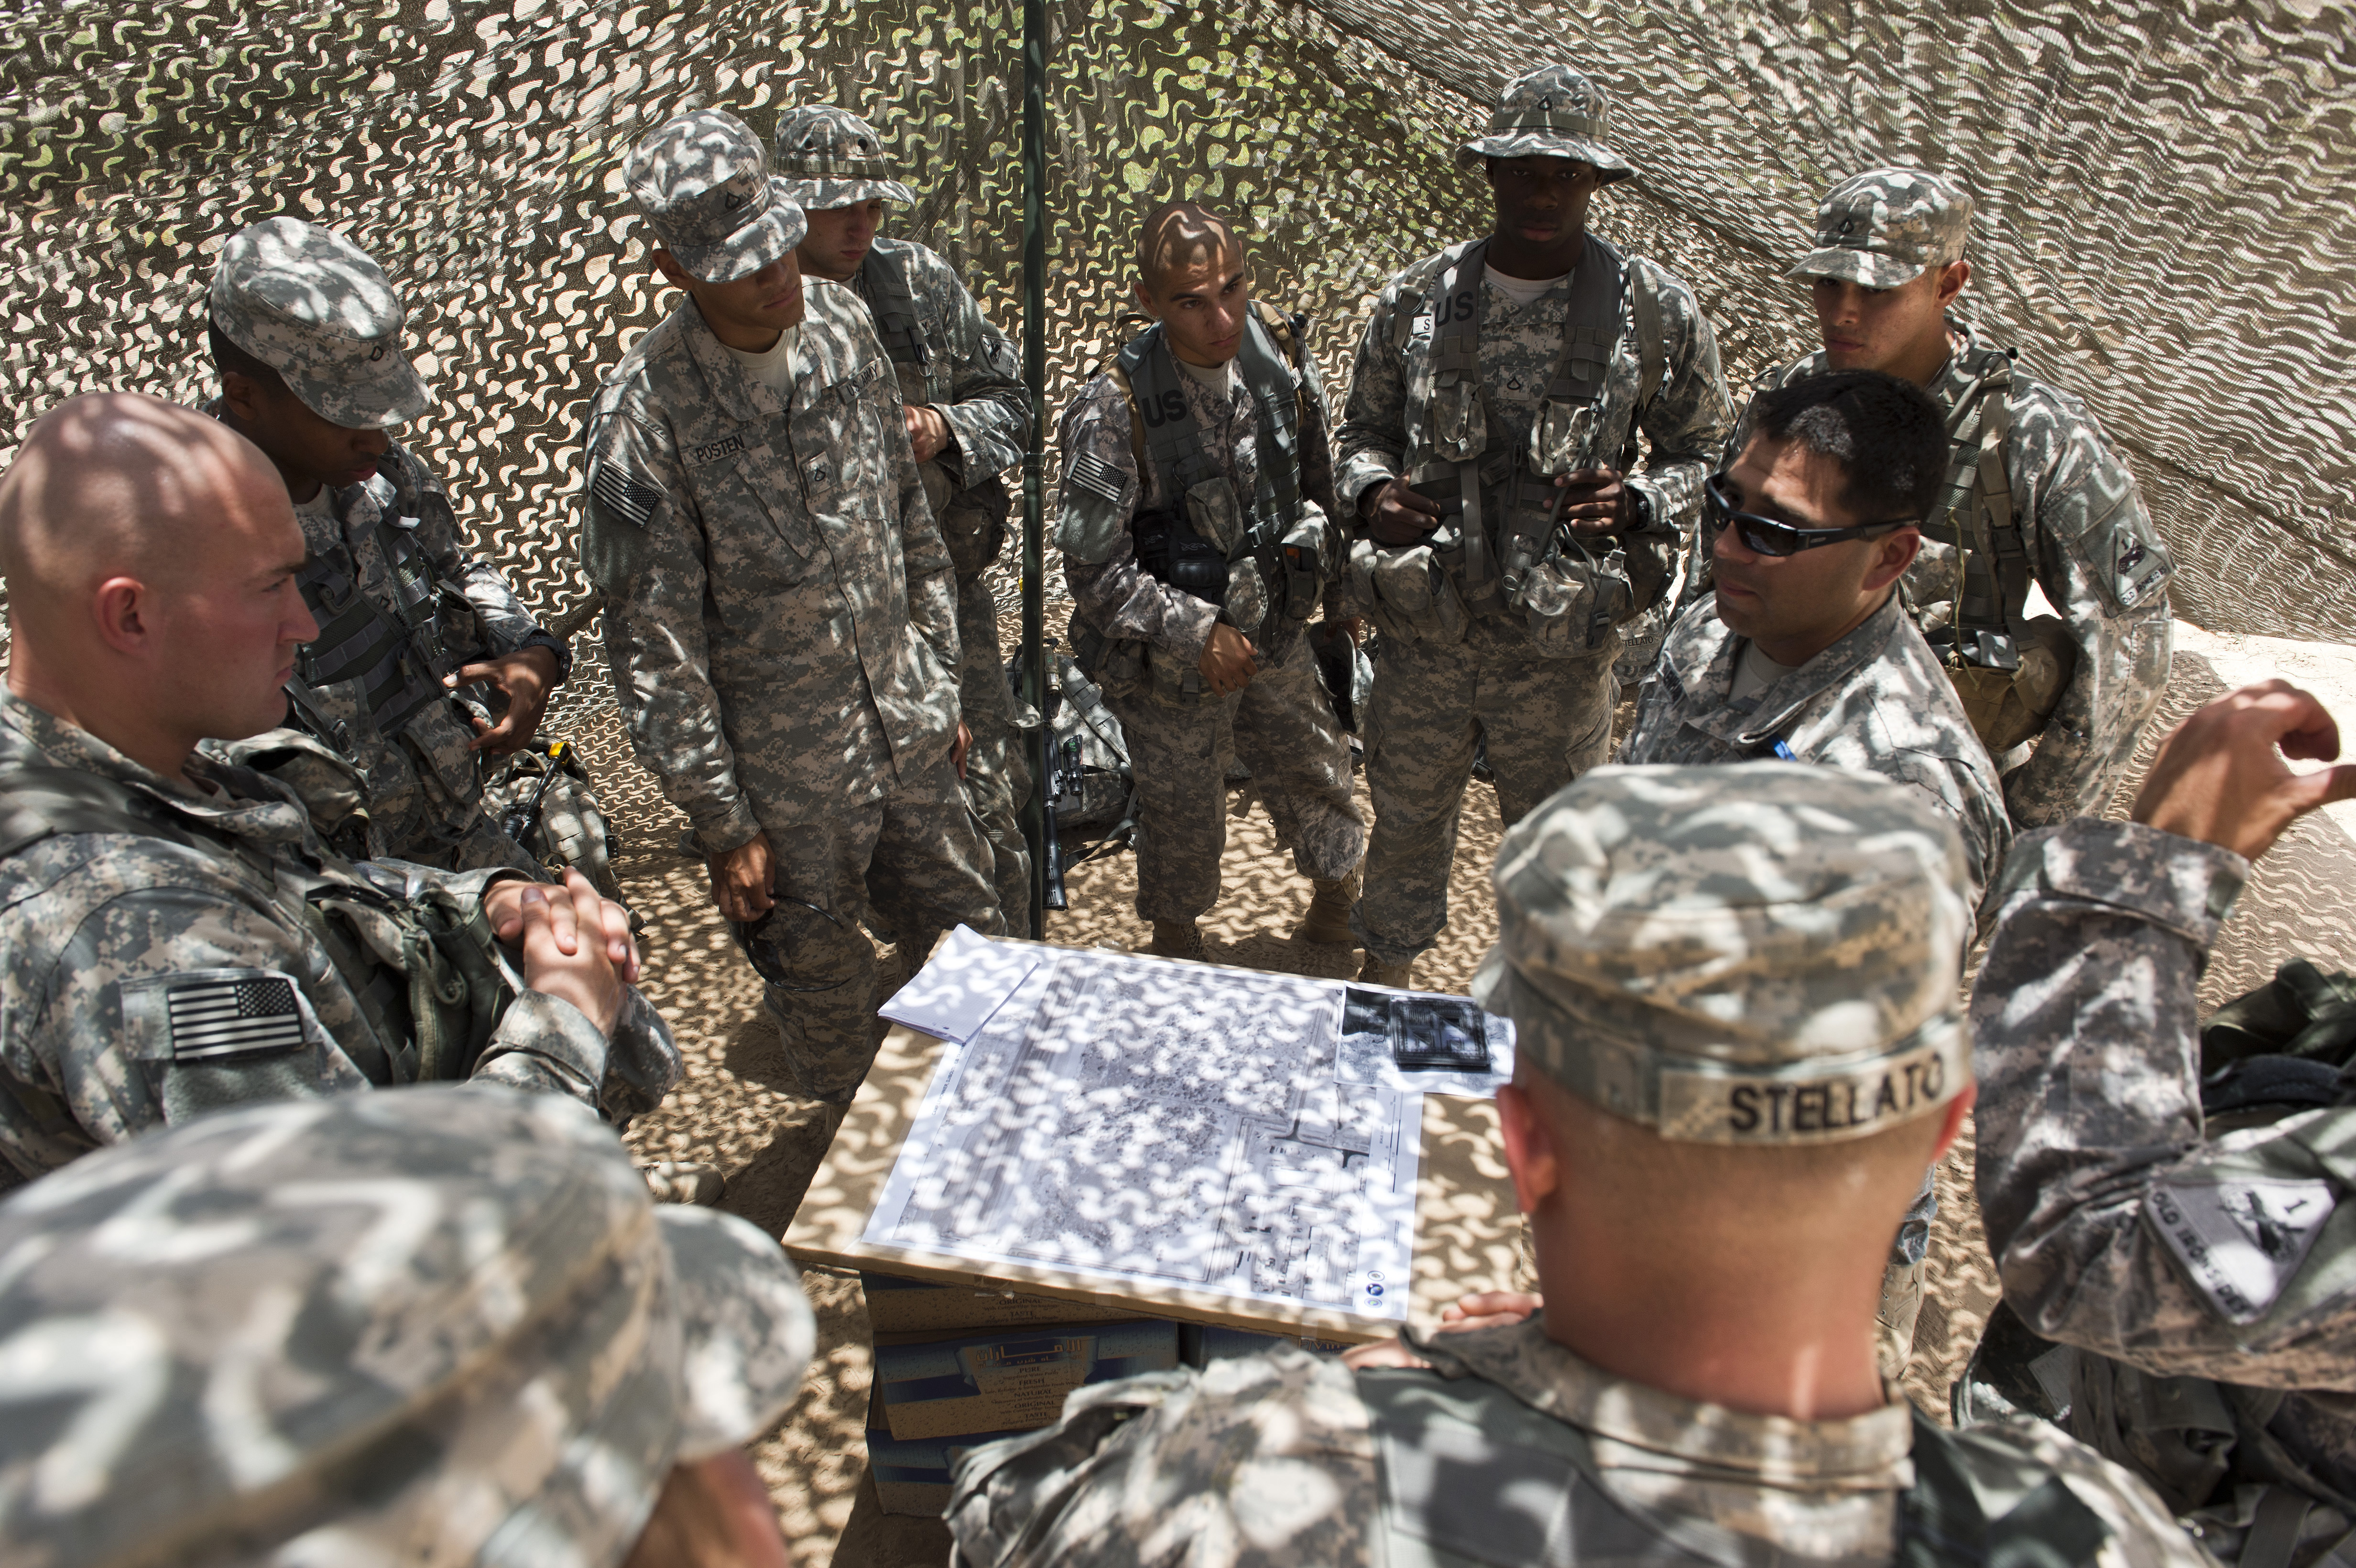 Staff Sgt. Billy Mollenhauer, 1st Battalion, 77th Armor Regiment infantry squad leader, briefs soldiers from the 1/77 AR Rgt. on land navigation in preparation for the Expert Infantry Badge assessment on Camp Lemonnier, Djibouti, April 15, 2015. Land navigation is one of several skills EIB candidates are graded on during the assessment course. (U.S. Air Force photo by Staff Sgt. Nathan Maysonet)